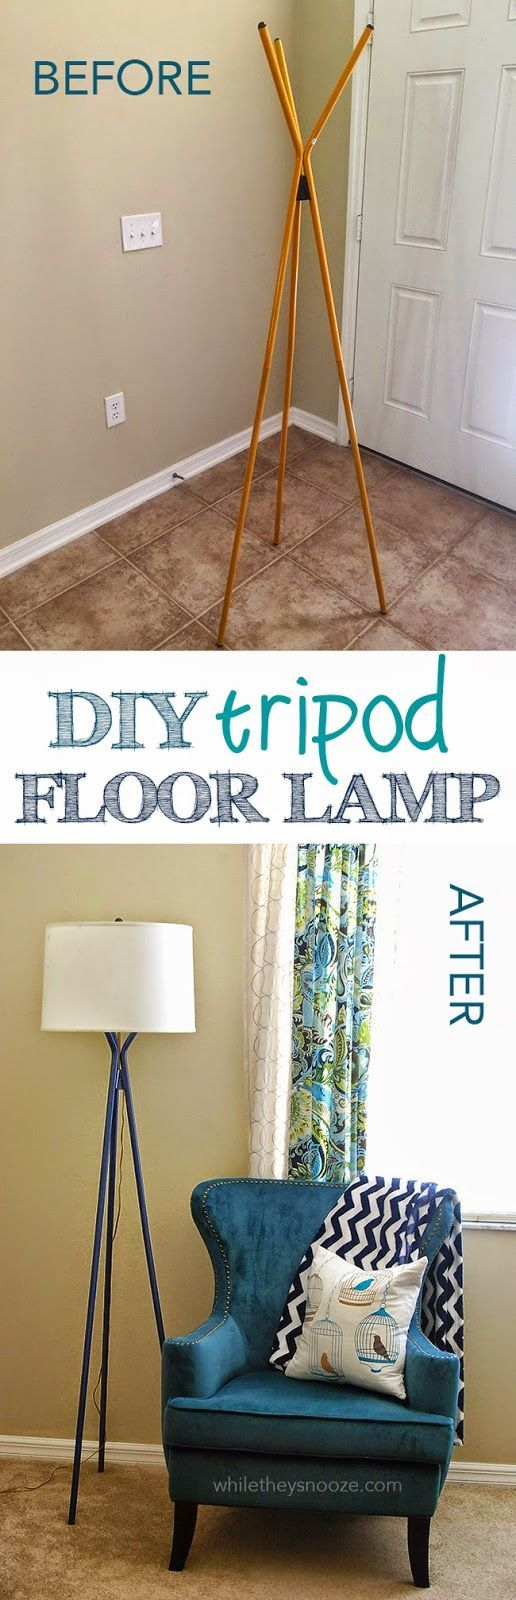 17 best ideas about diy floor lamp on pinterest copper for Homemade floor lamp ideas